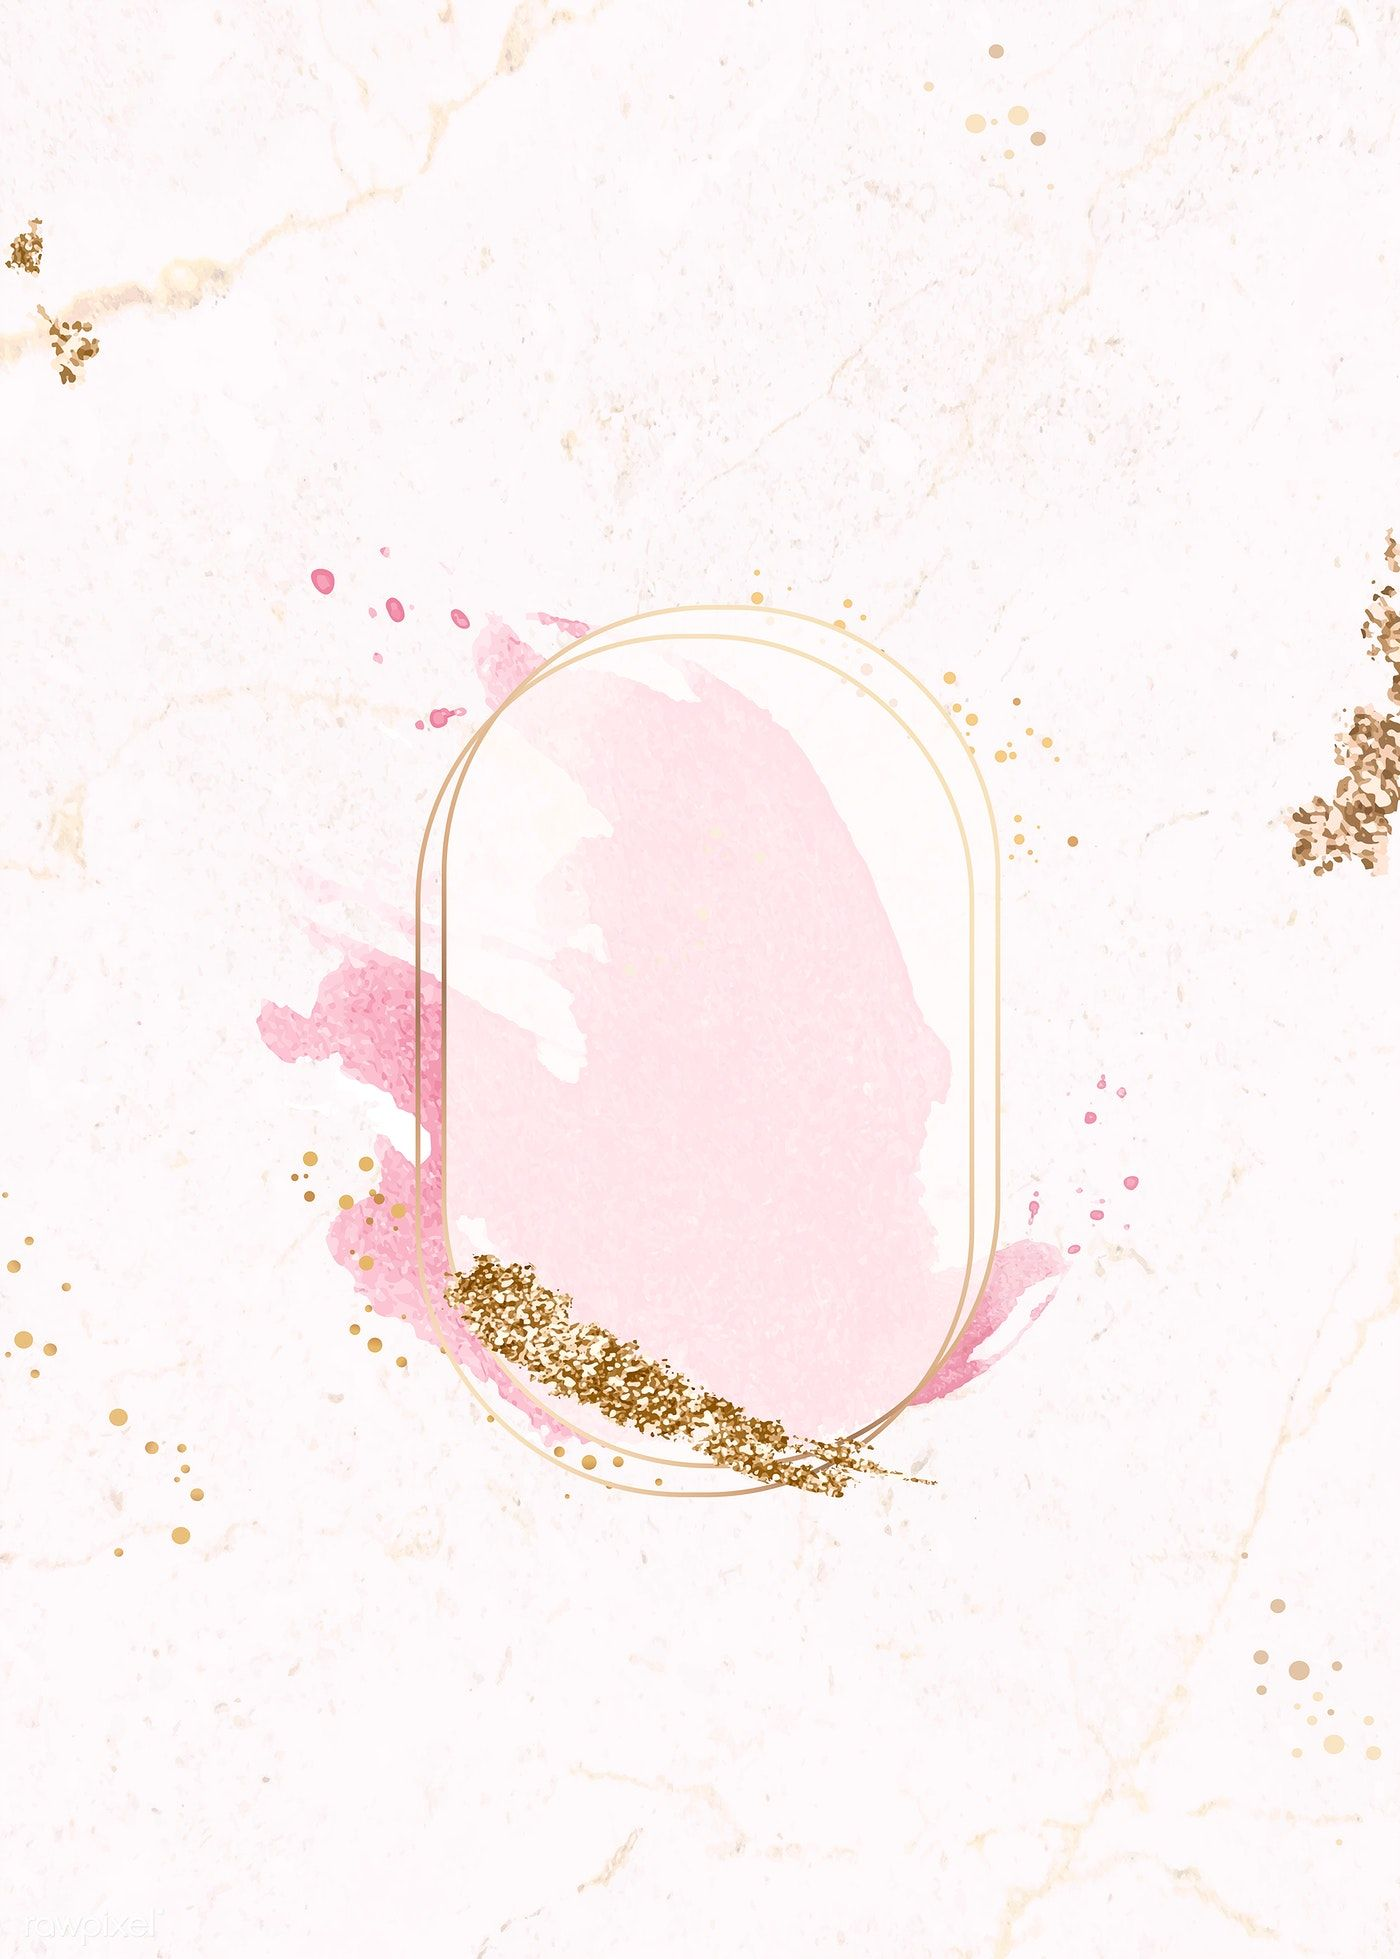 Download premium vector of Gold oval frame on pink